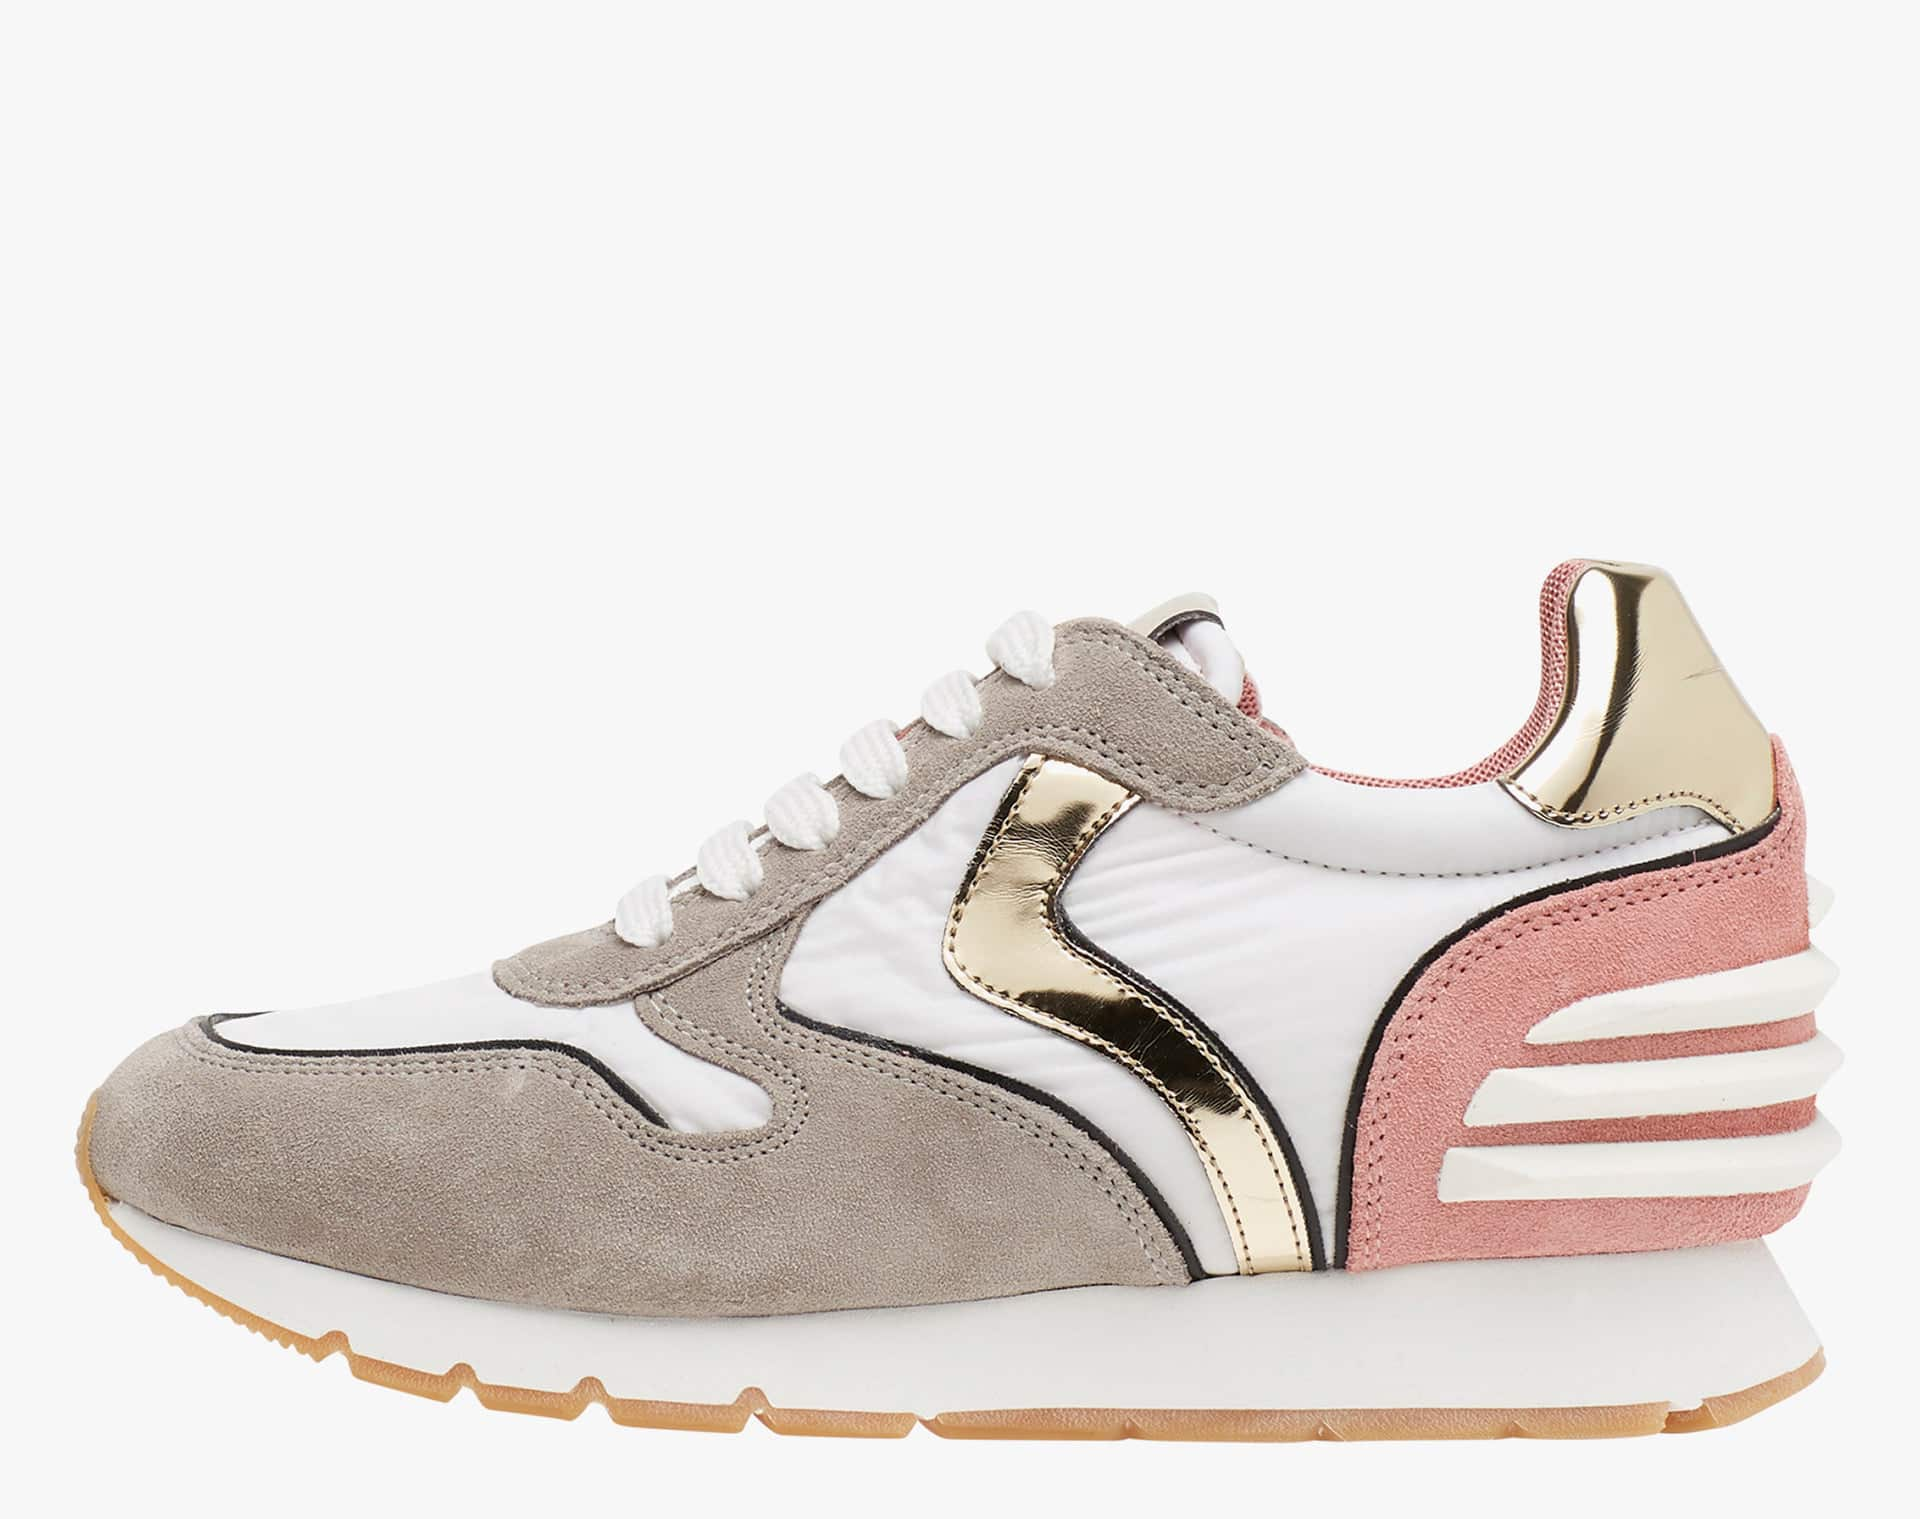 JULIA SLAM POWER - Suede and nuanced technical fabric sneakers - Dove grey